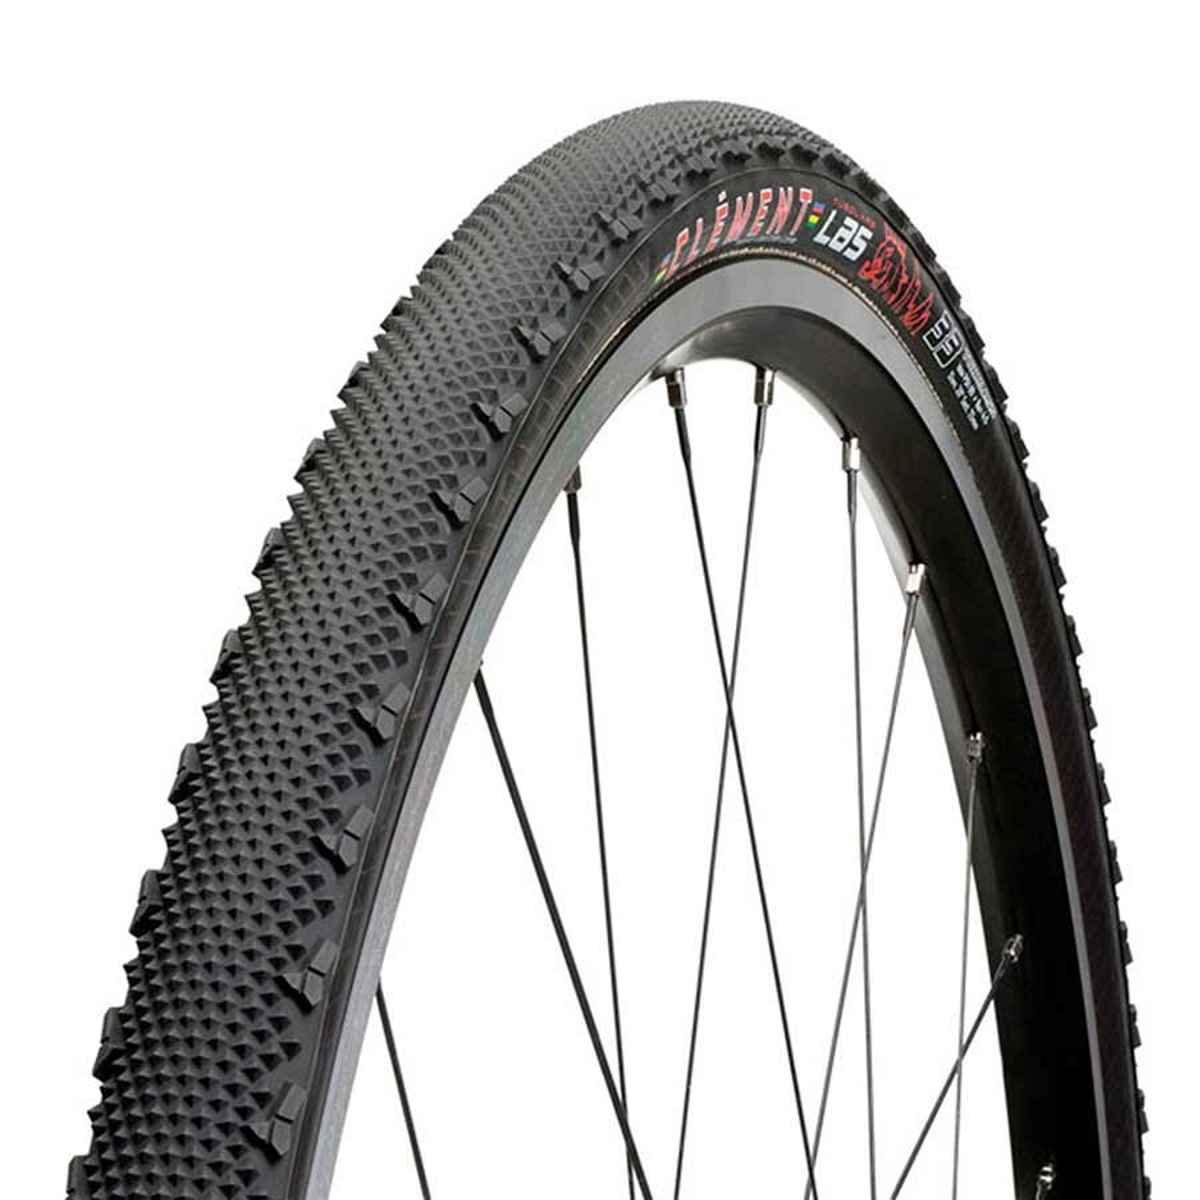 Donnelly / Clement – Las Tubular Tire 700 x 33 B075NNVBTT